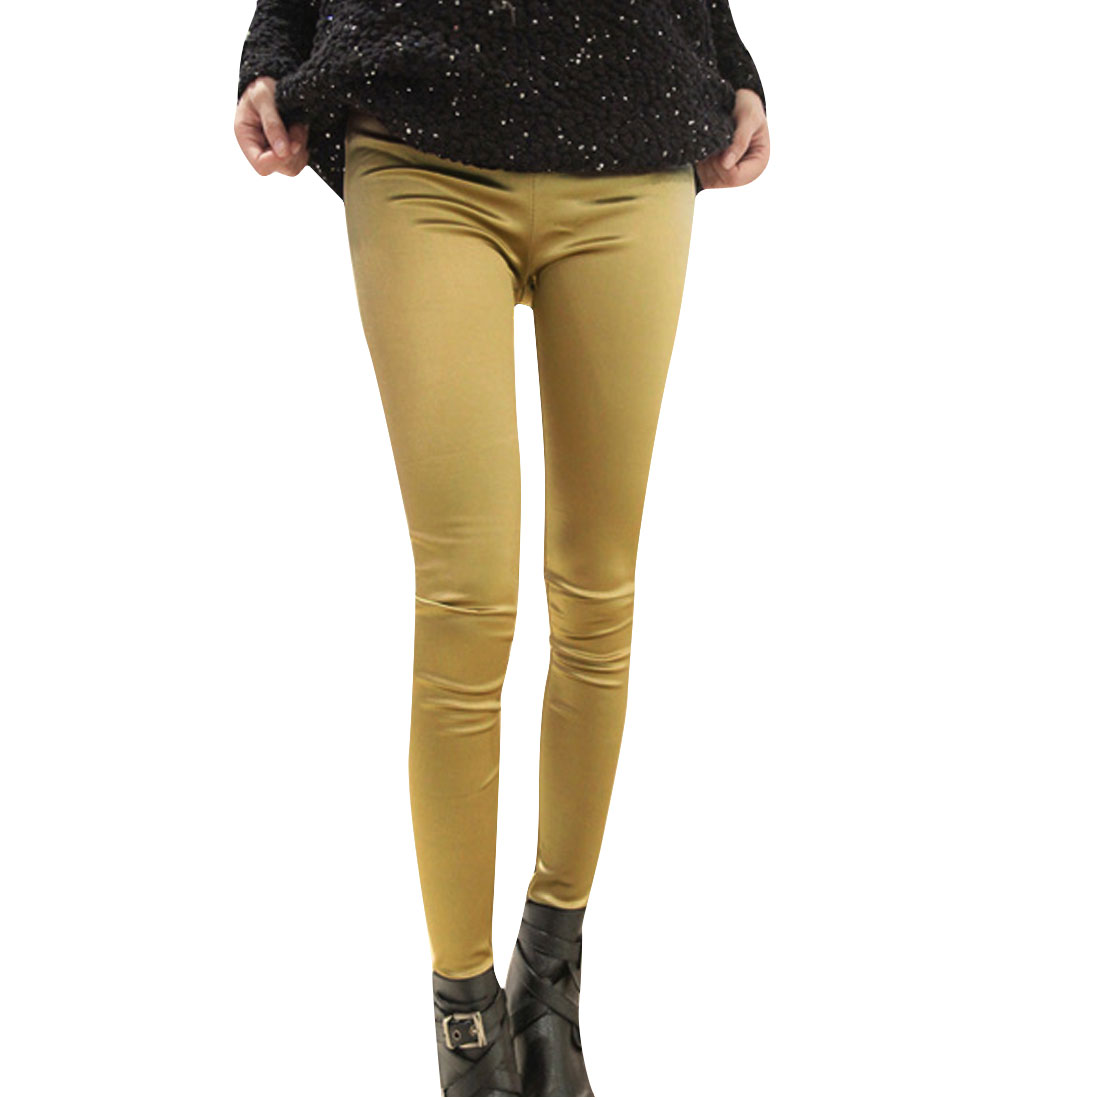 Women Elastic Waist Autumn Leisure Leggings Gold Tone XS